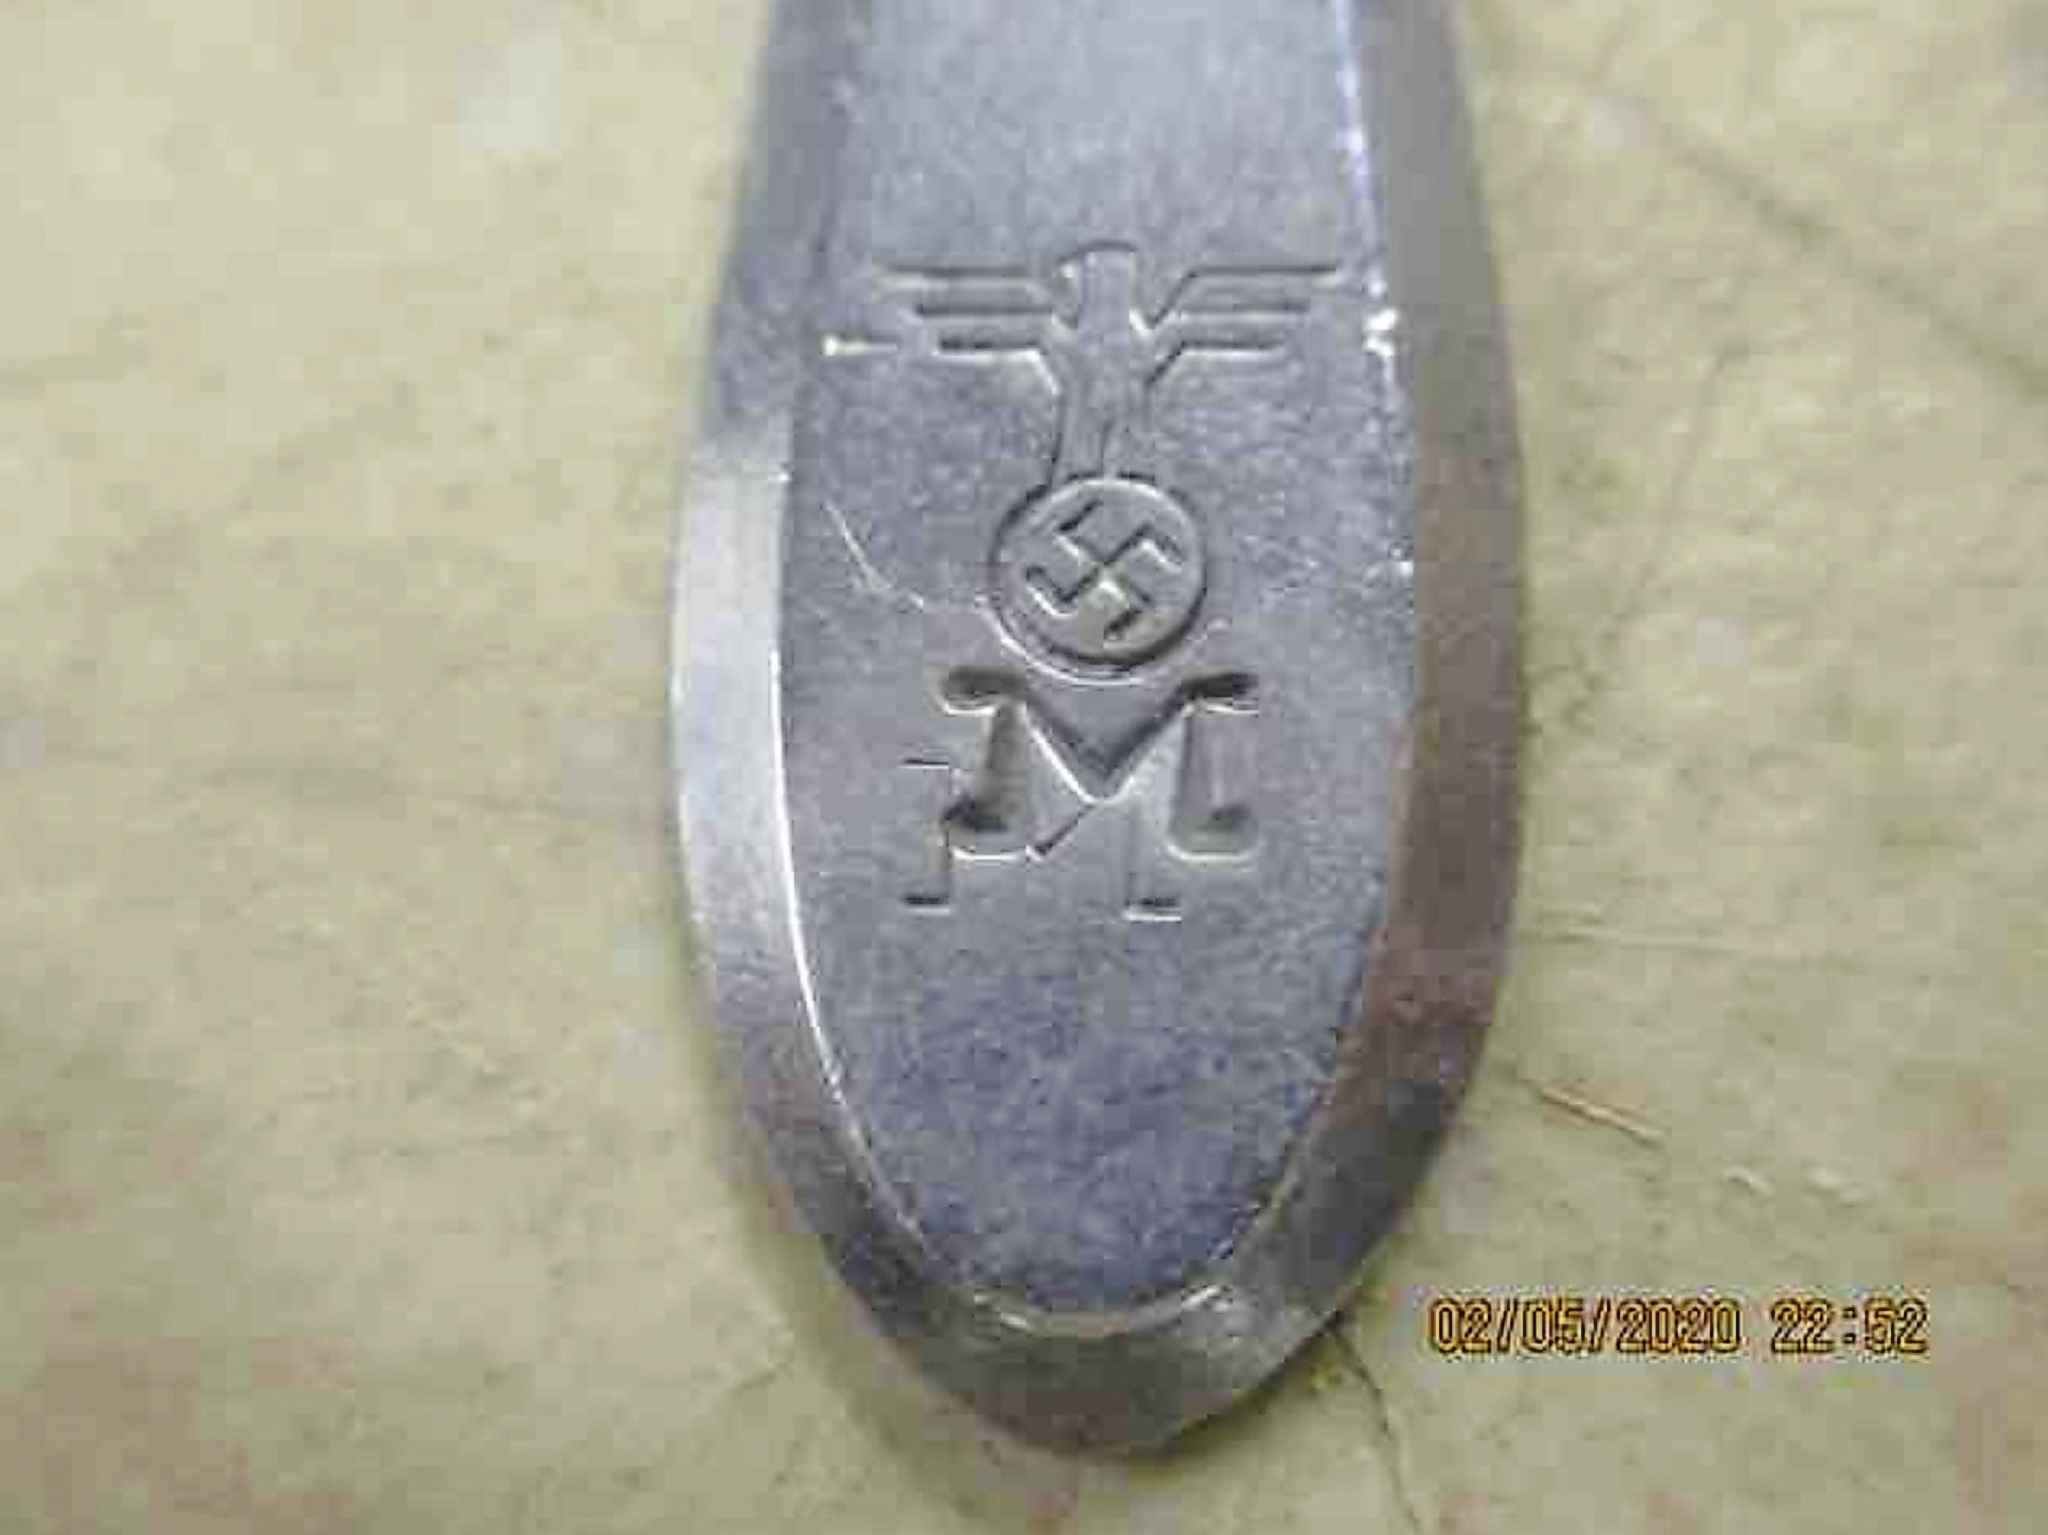 Kreigsmarine aluminum spoon. (McSherry Auction Service)